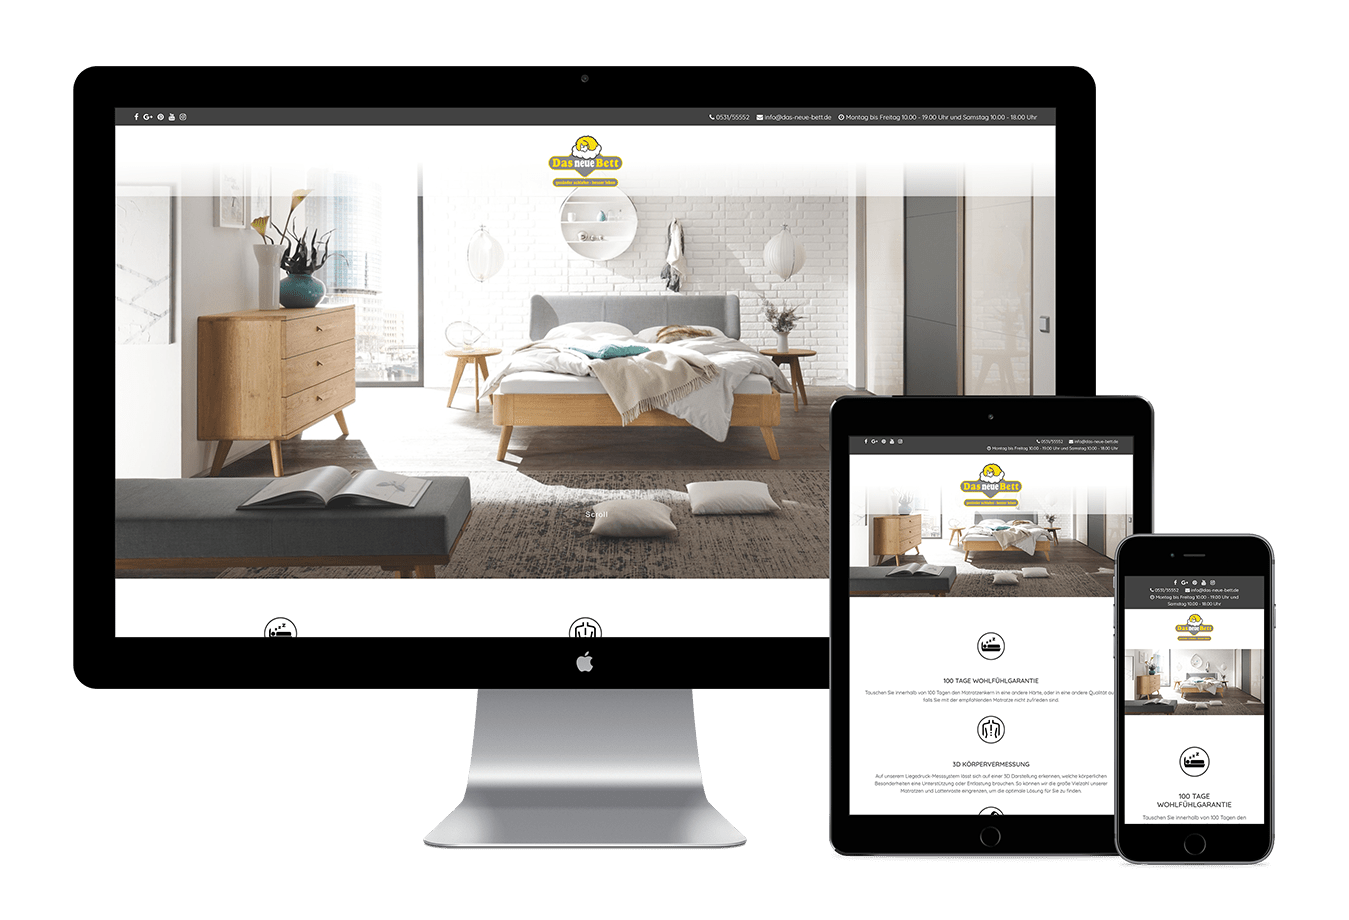 Online Marketing United - Das neue Bett